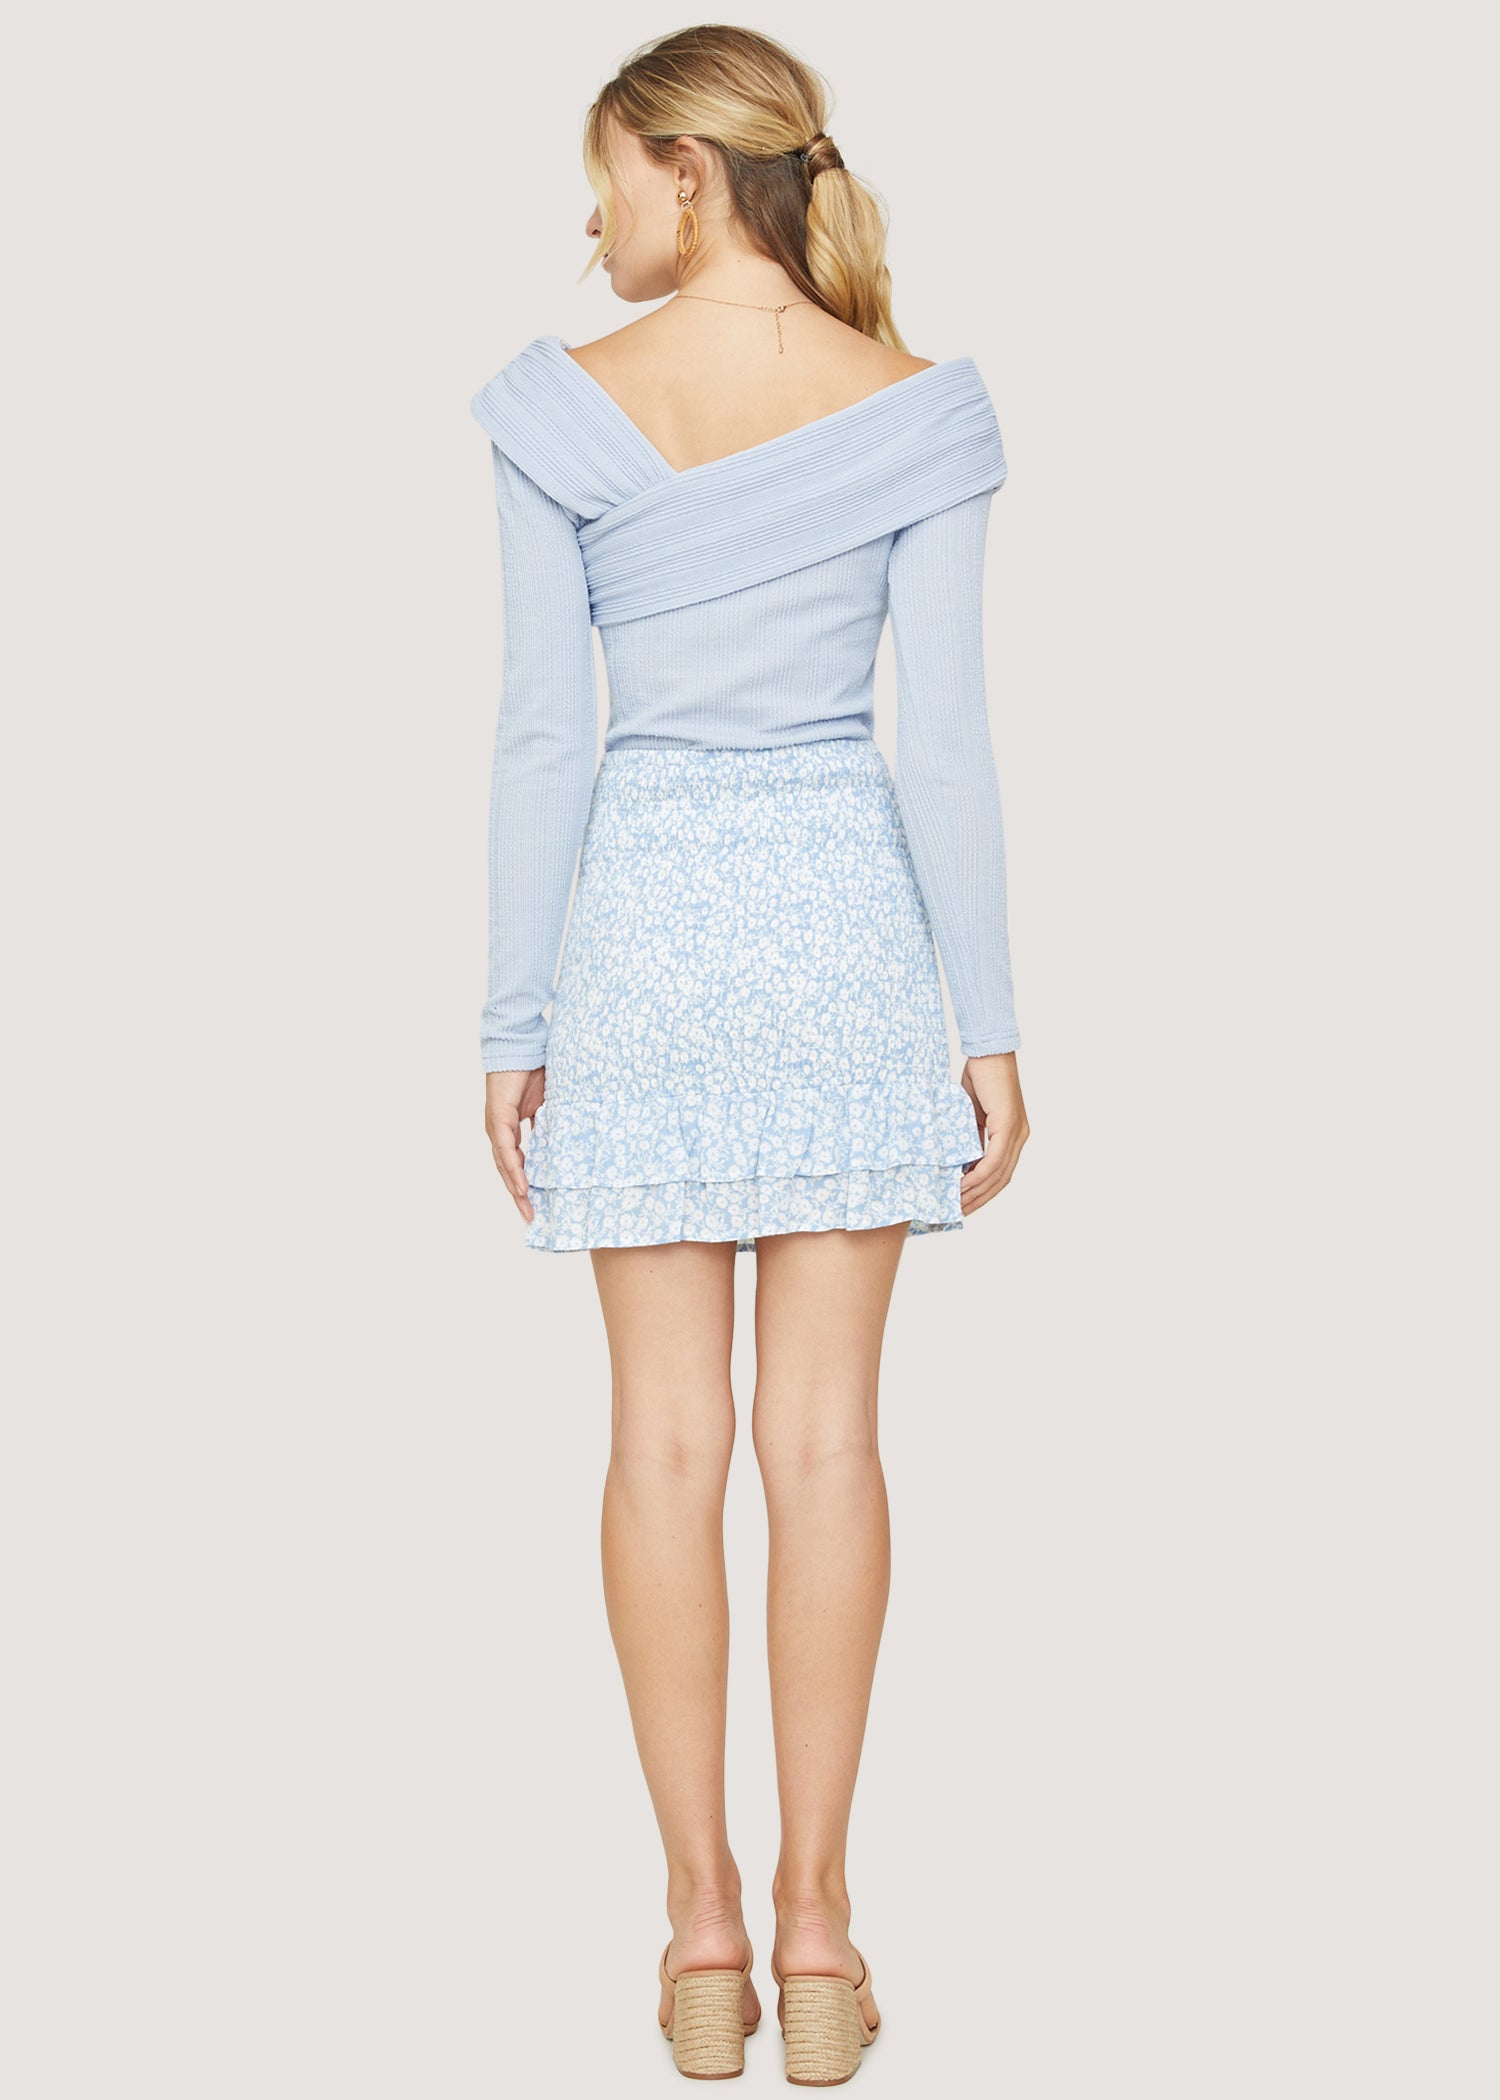 Seaside Breeze Mini Skirt